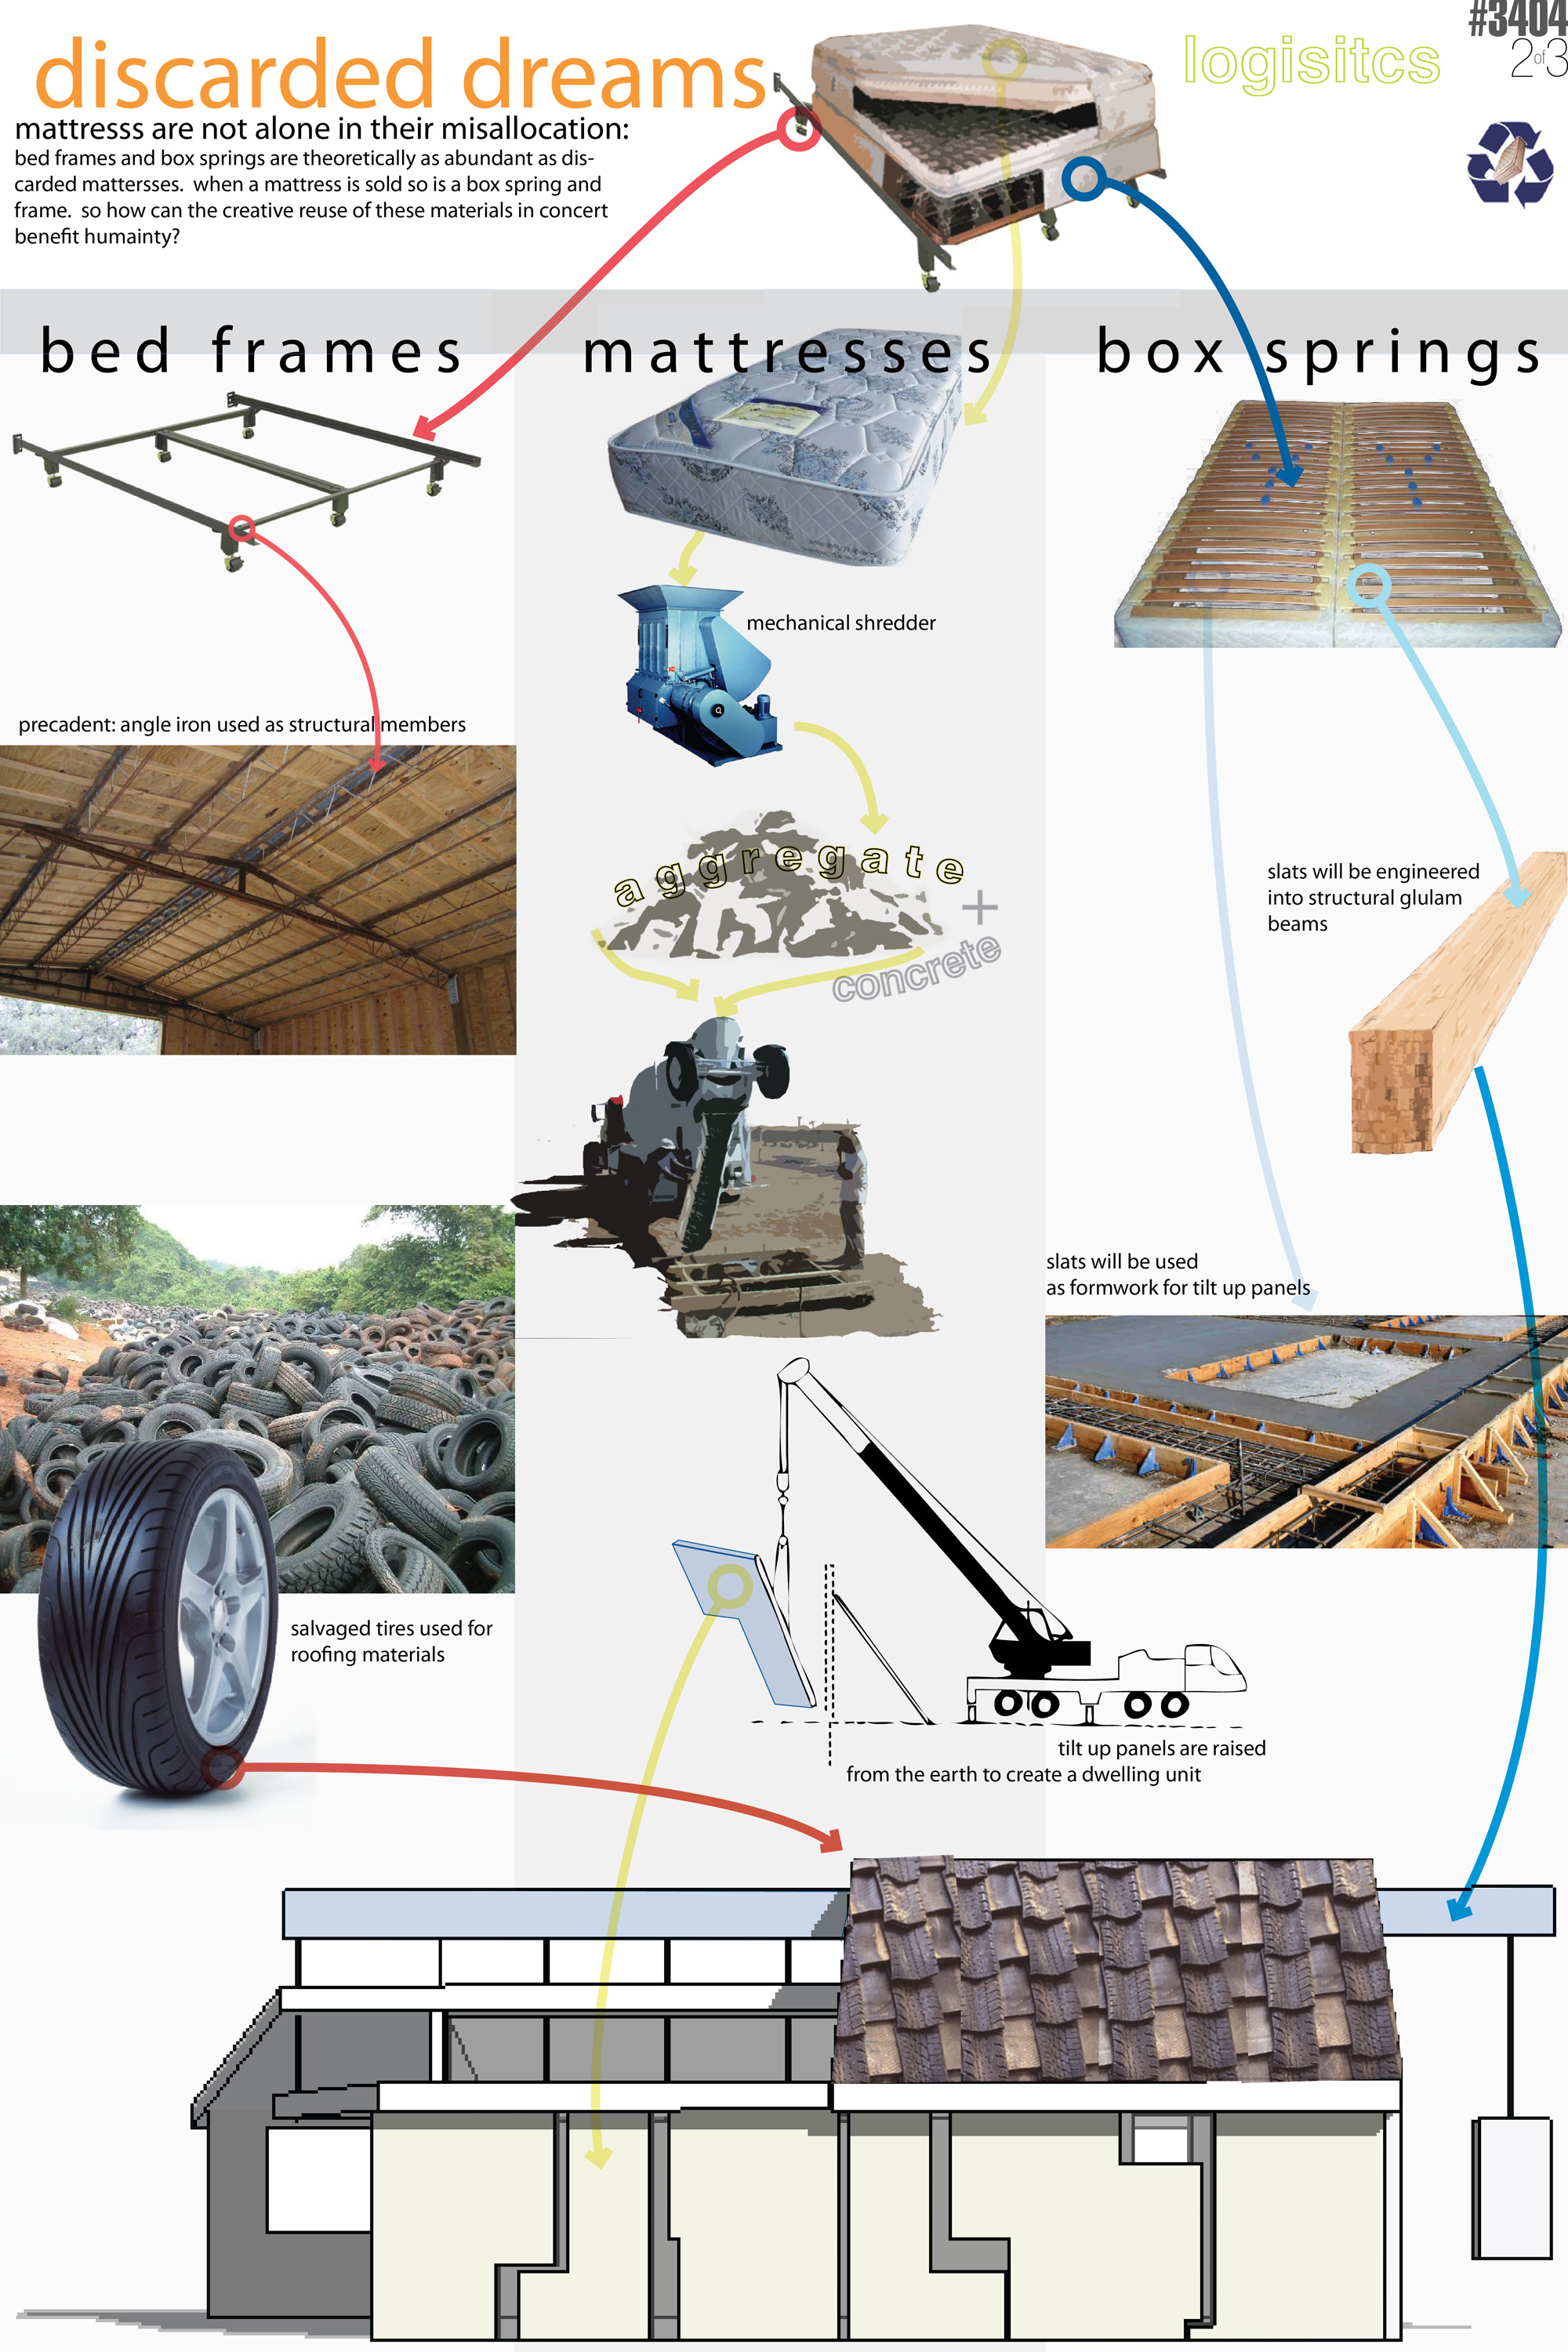 Sustainable architecture wikidwelling for Materials needed to build a house